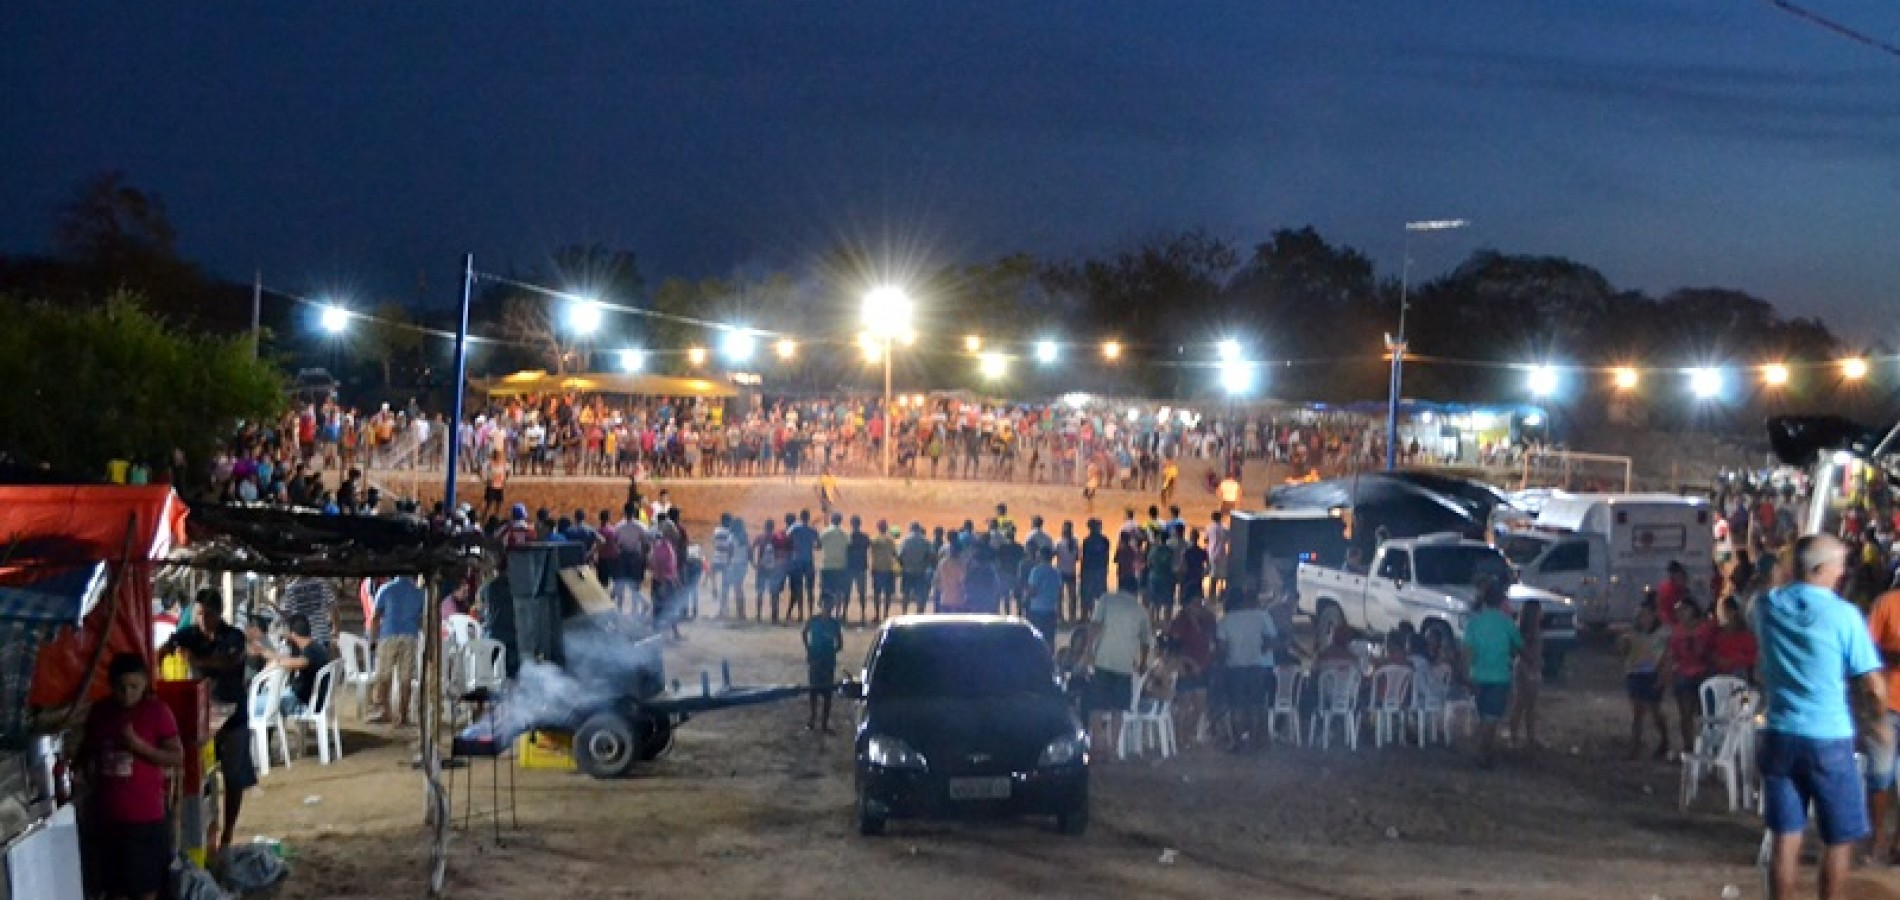 FOTOS | Festival Desportivo de Férias de Angical, Massapê do Piauí – 2ª rodada